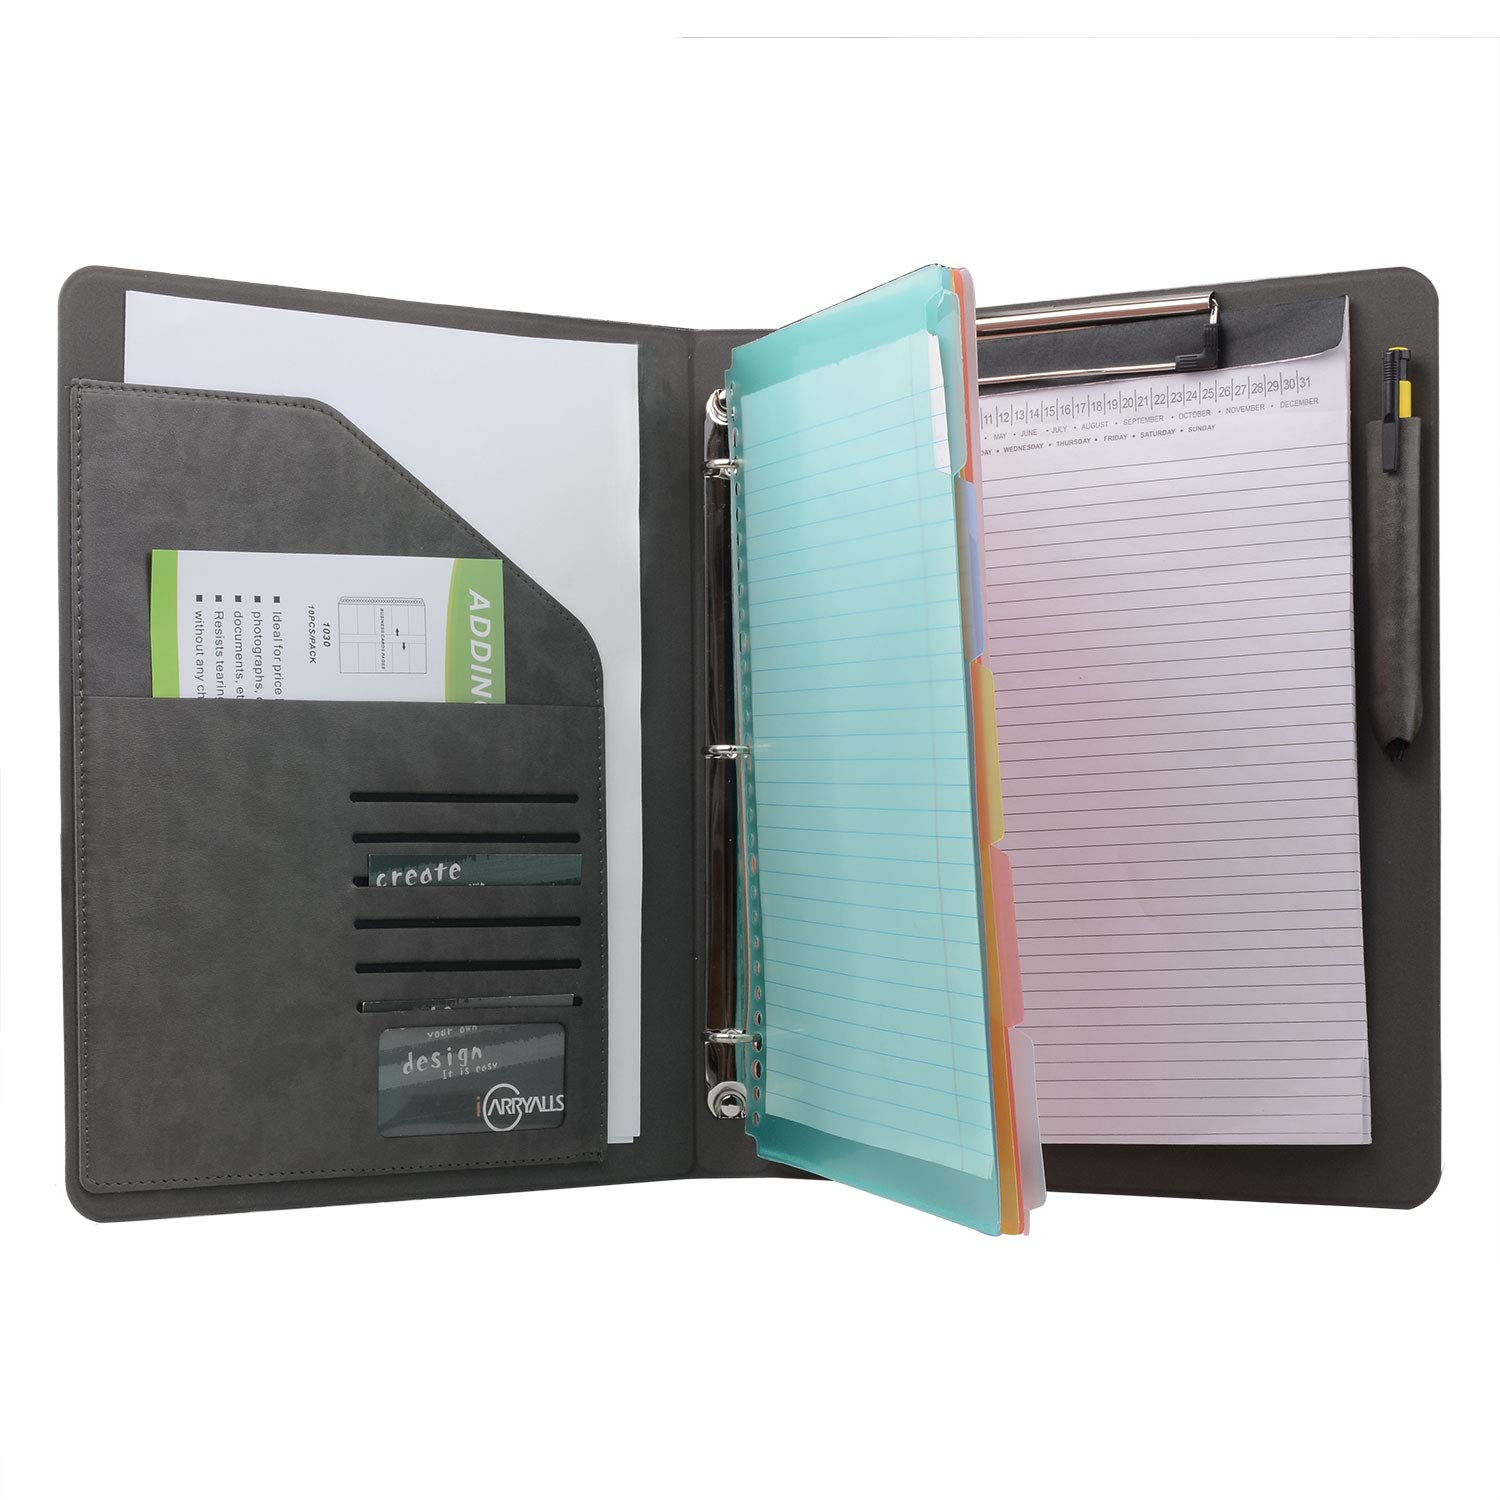 Binder Portfolio Organizer with Color File Folders, Business and Interview Padfolio with 3-Ring Binder, Clipboard by XIAOZHI